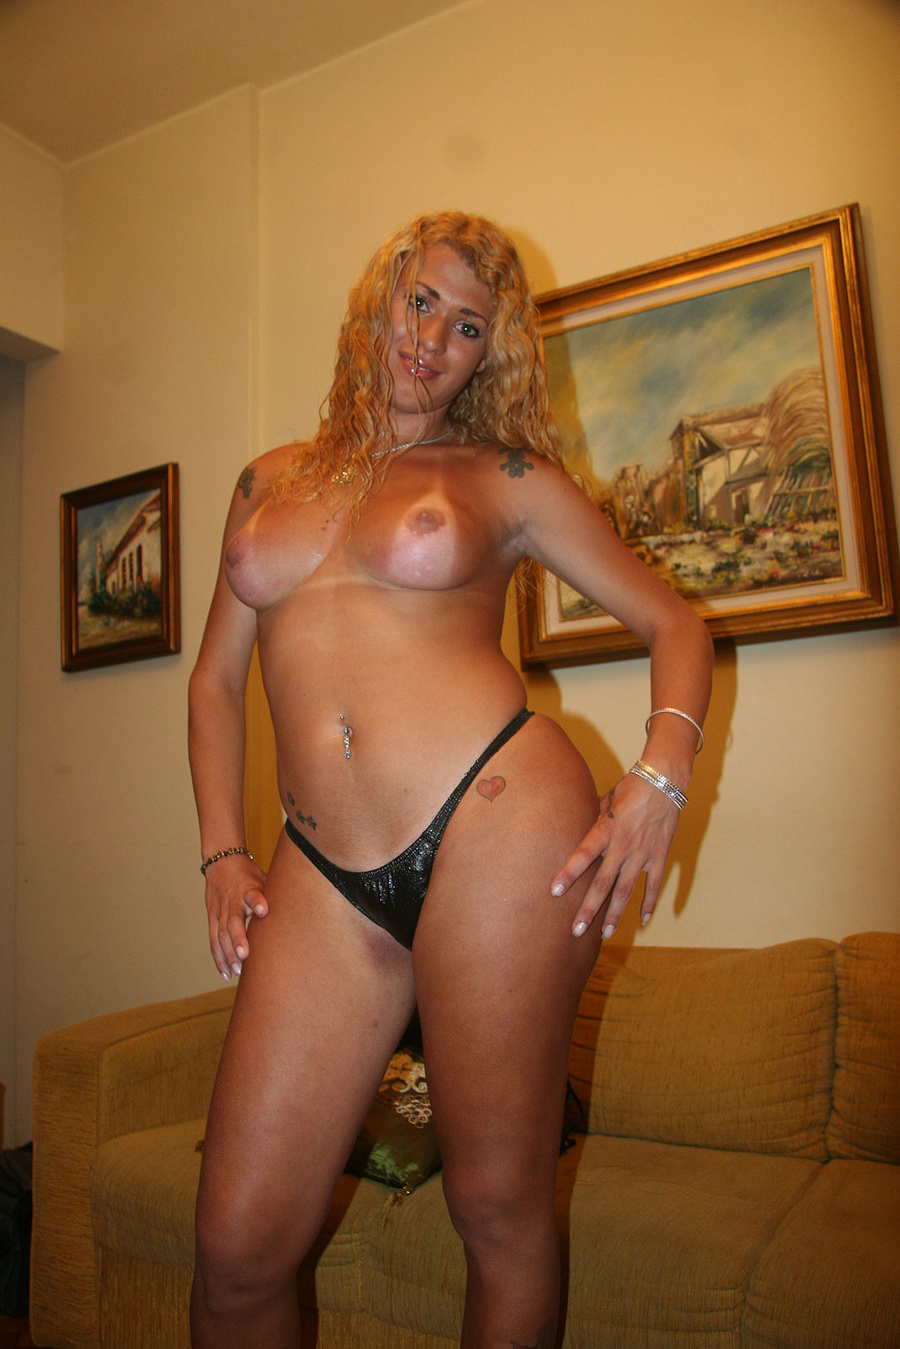 Curly Blonde Hair Petite